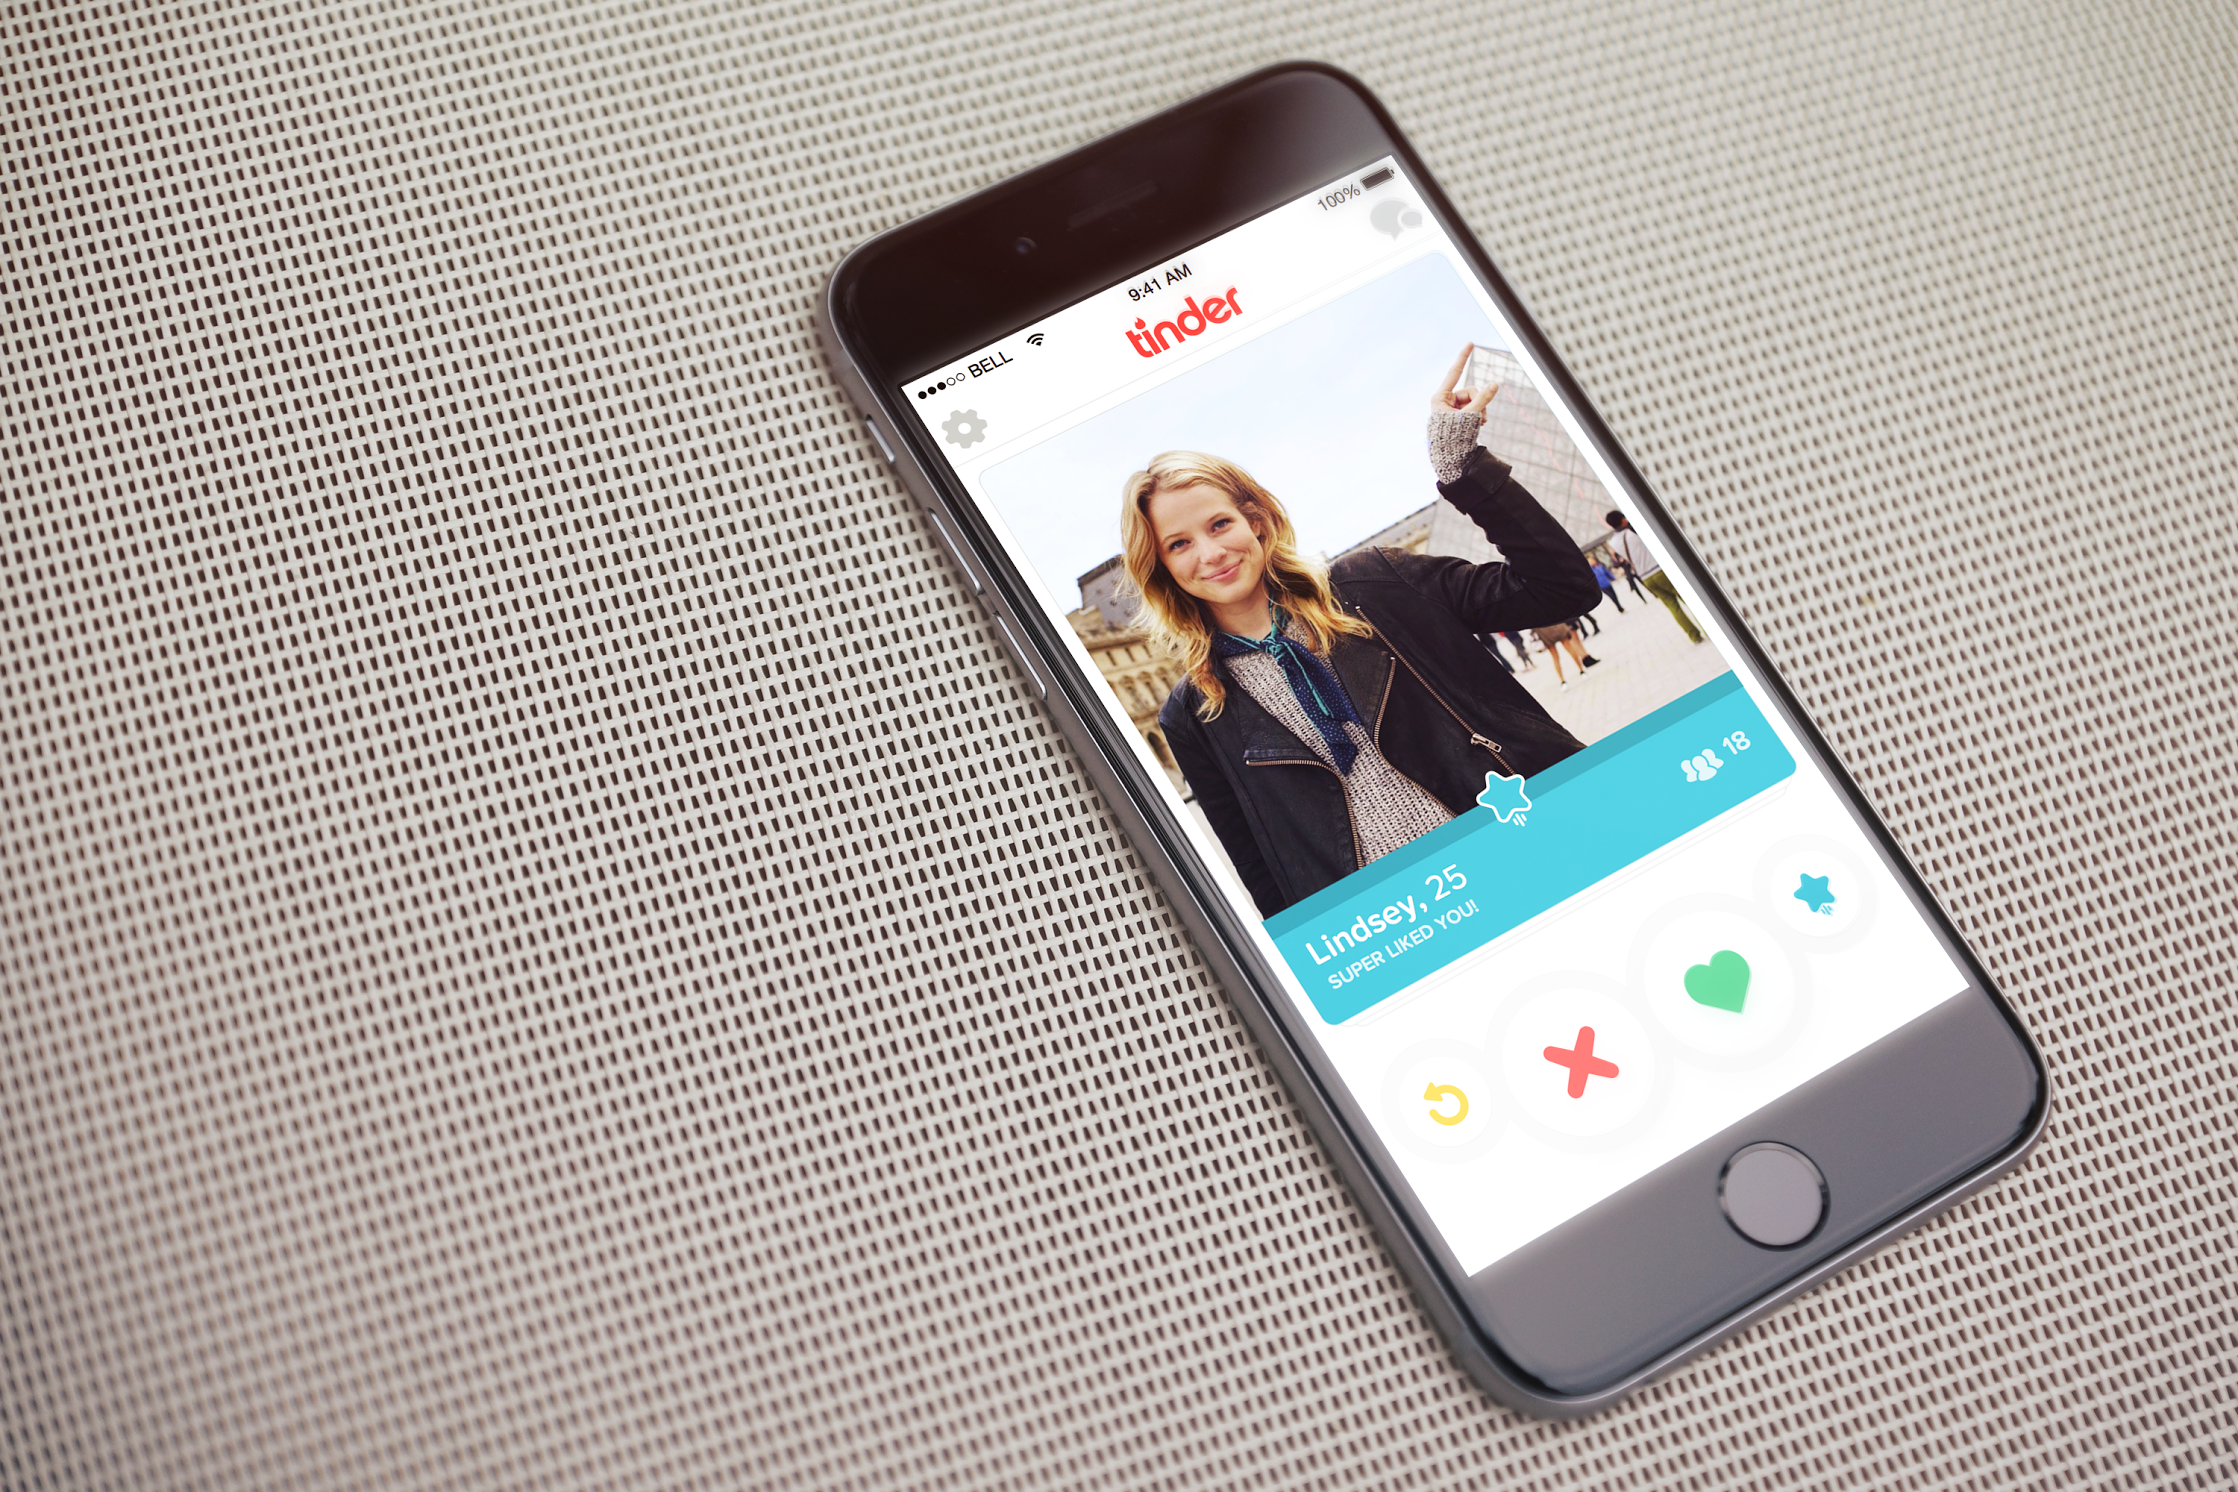 Tinder's Super Like Says More Than A Simple Right Swipe | TechCrunch